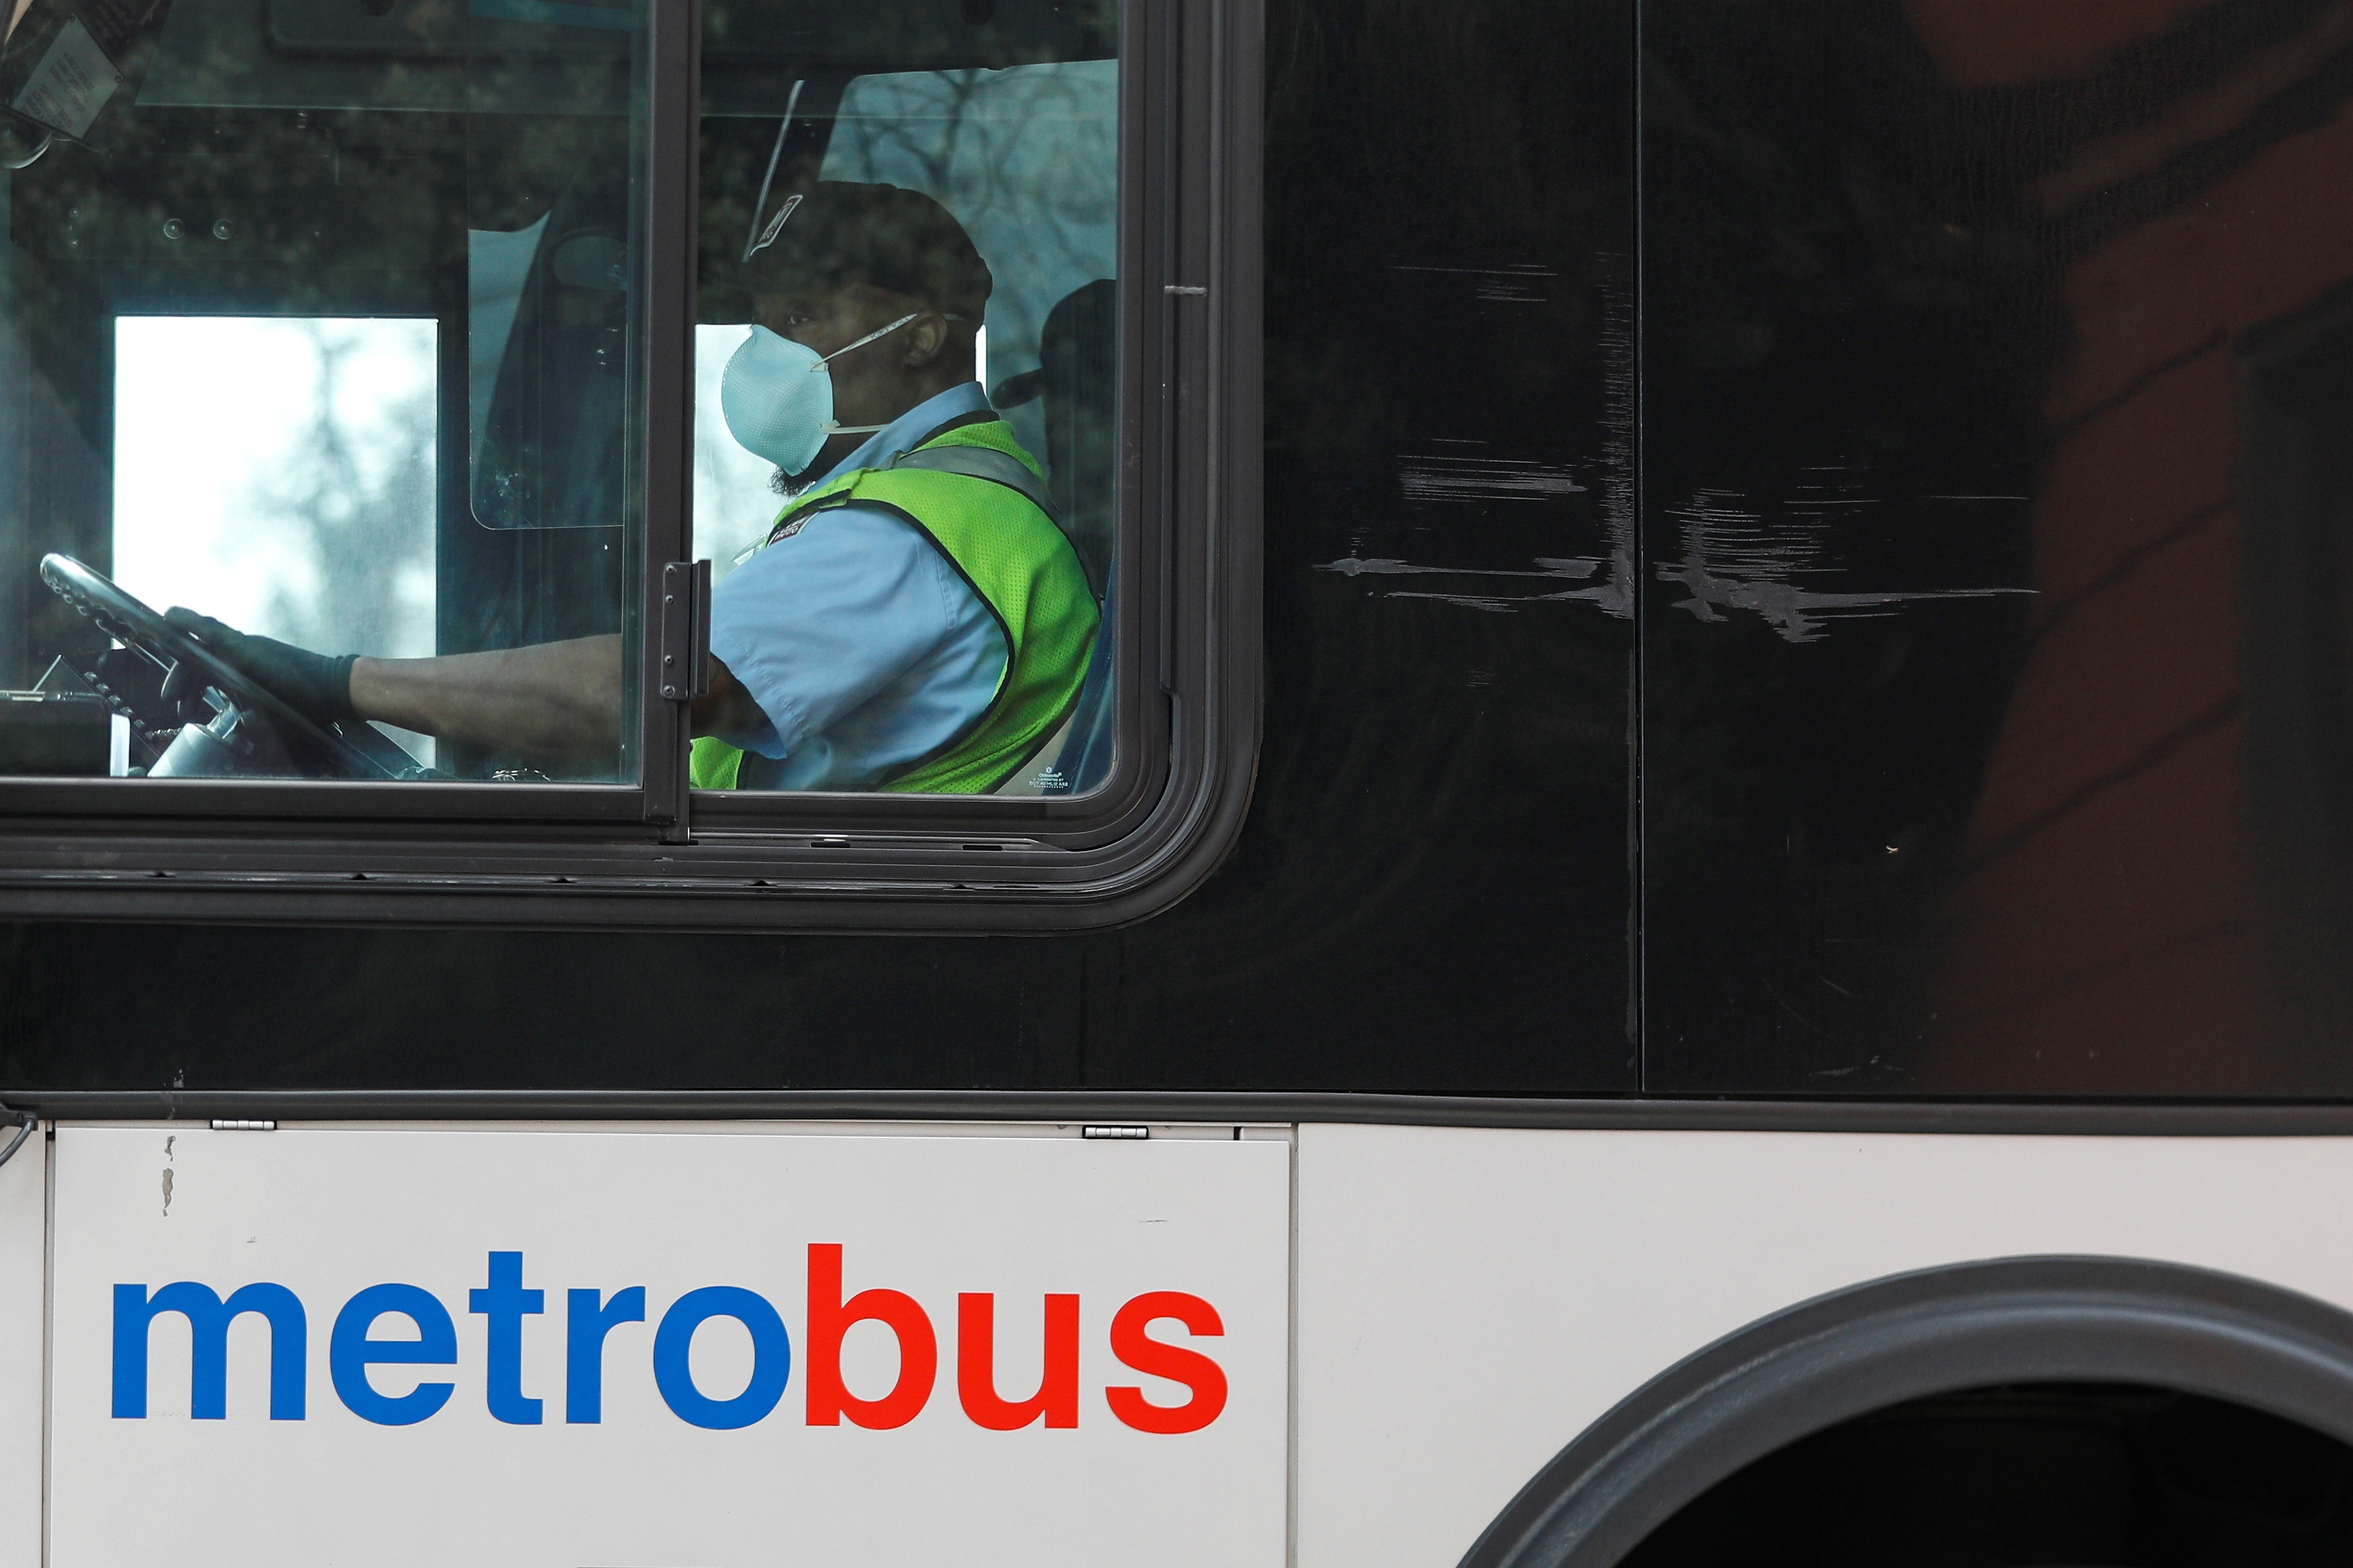 A Washington Metro bus driver passes along a route wearing a face mask, as Mayor Muriel Bowser issued a State of Emergency in response to the coronavirus disease (COVID-19) in Washington, U.S., March 20, 2020. REUTERS/Tom Brenner